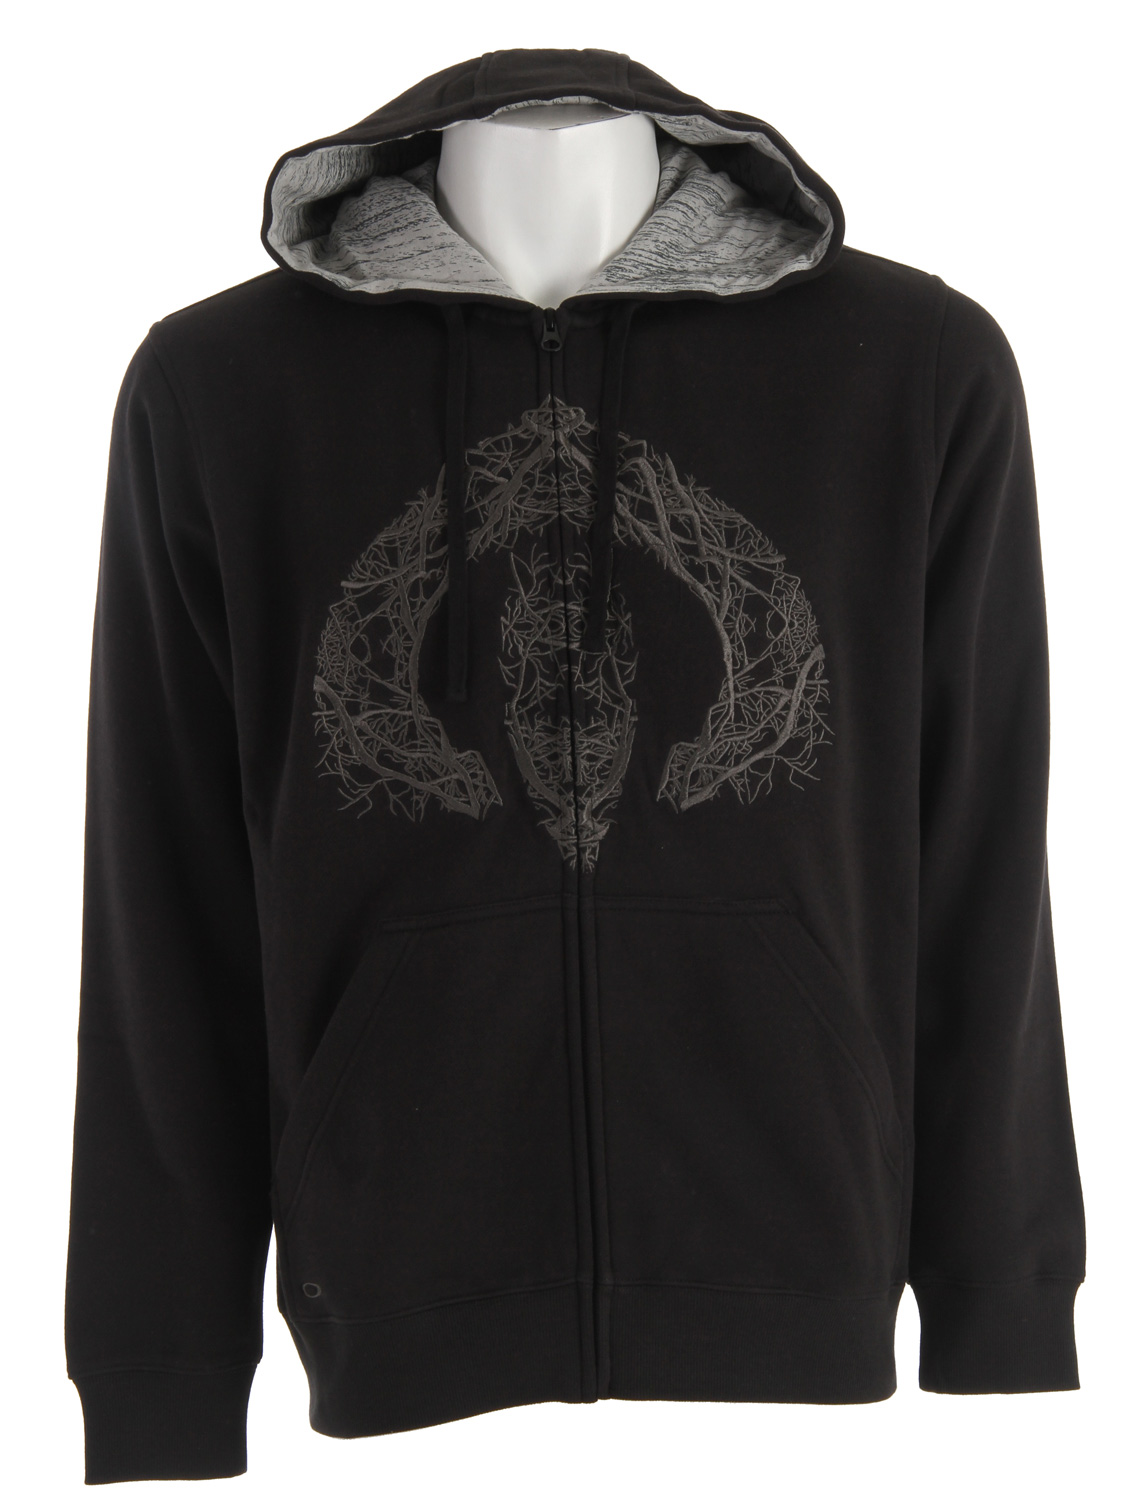 Full zip hoodie with marsupial hand pockets, contrast print hood lining and front embroidery. 83% Cotton/17% Polyester - $48.95